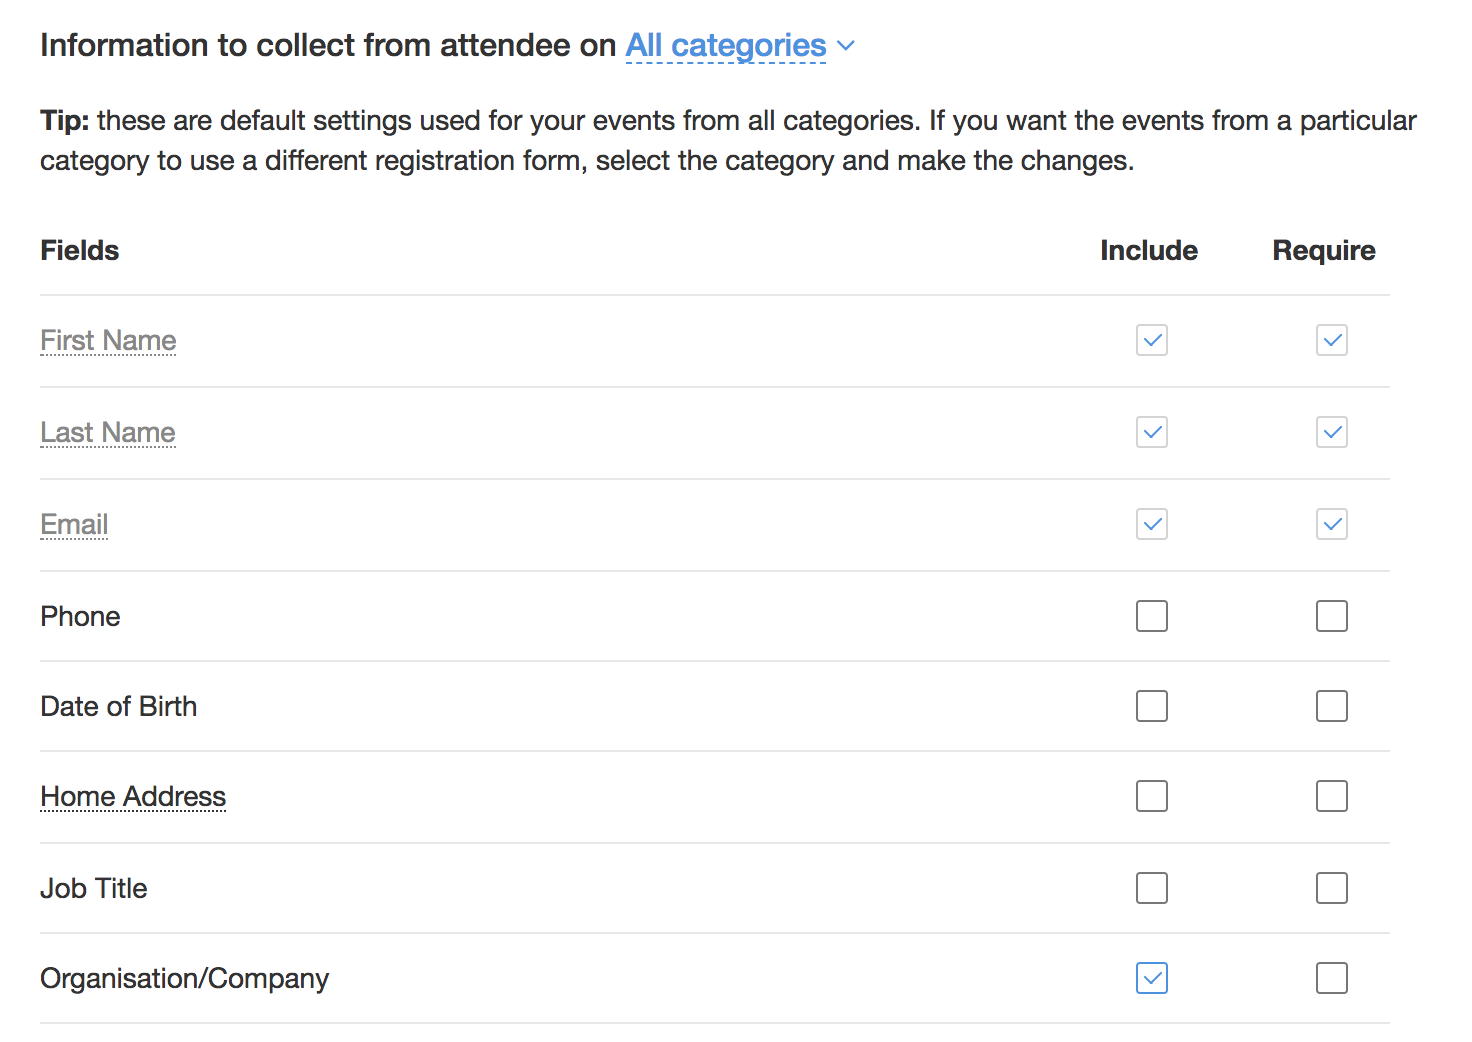 Registration Form Settings